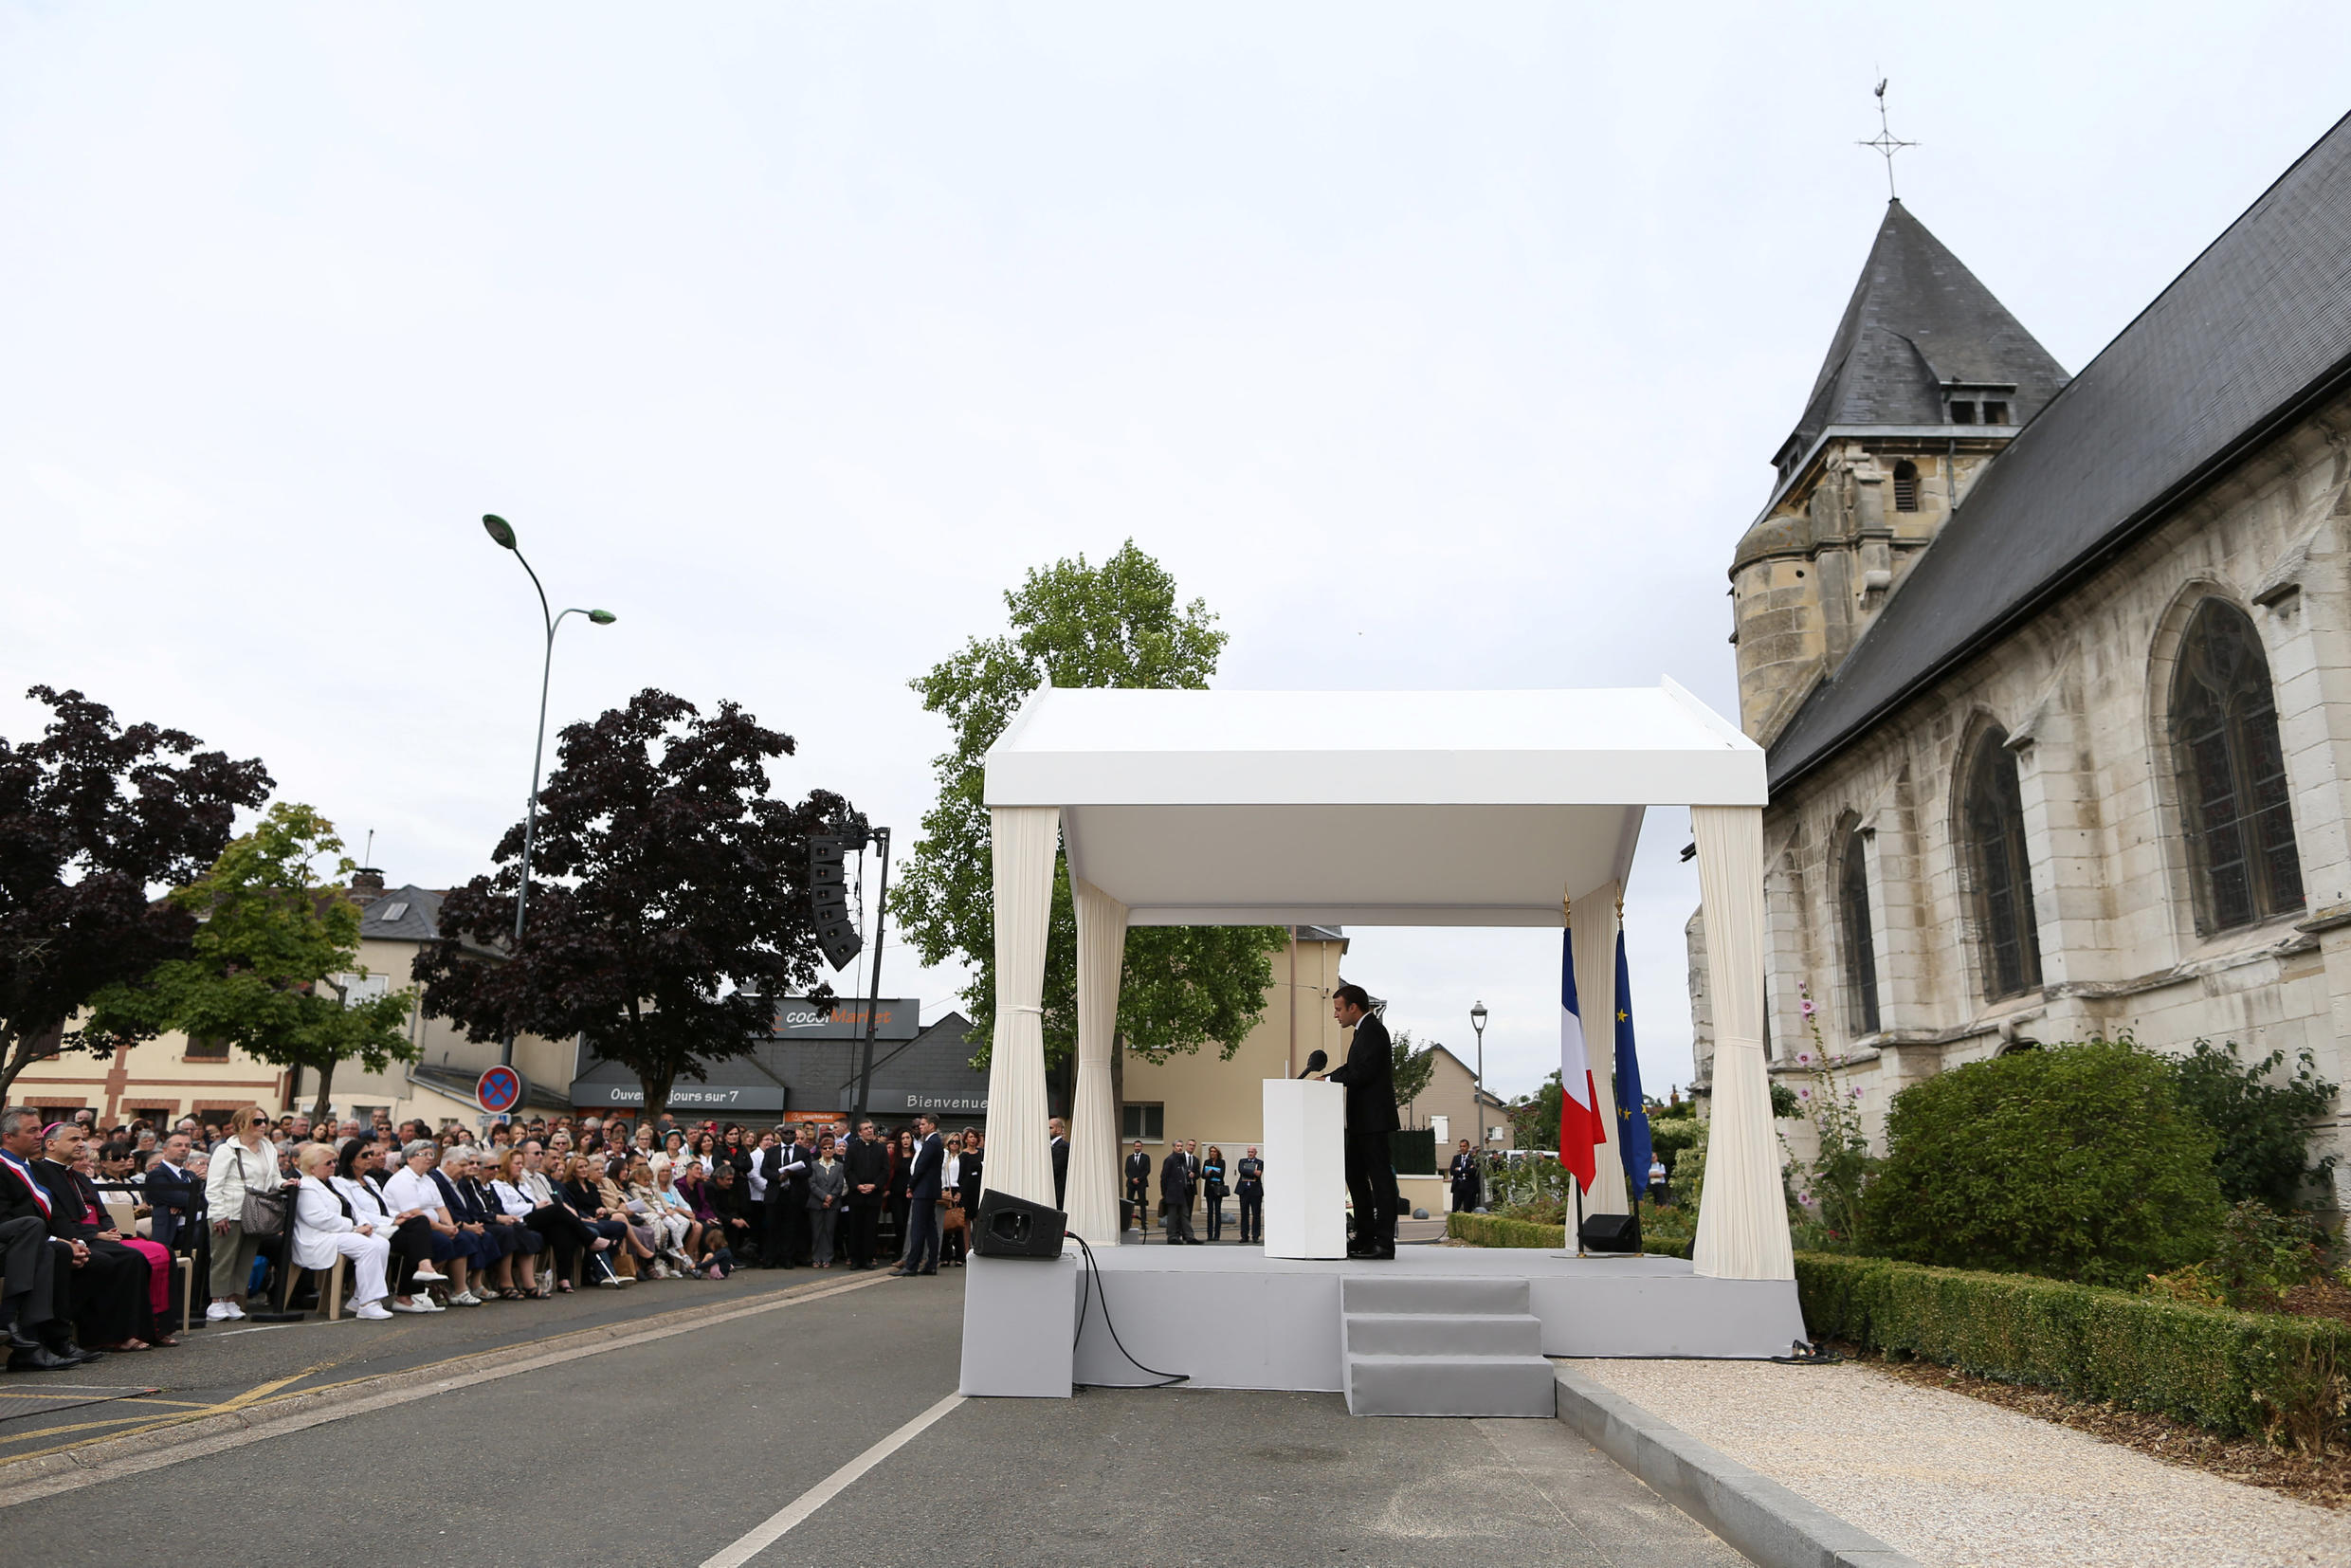 French President Emmanuel Macron delivers a speech after a mass to pay tribute to French priest Father Jacques Hamel one year after he was killed by Islamist militants in an attack in the church, in Saint-Etienne-du-Rouvray, France, July 26, 2017.